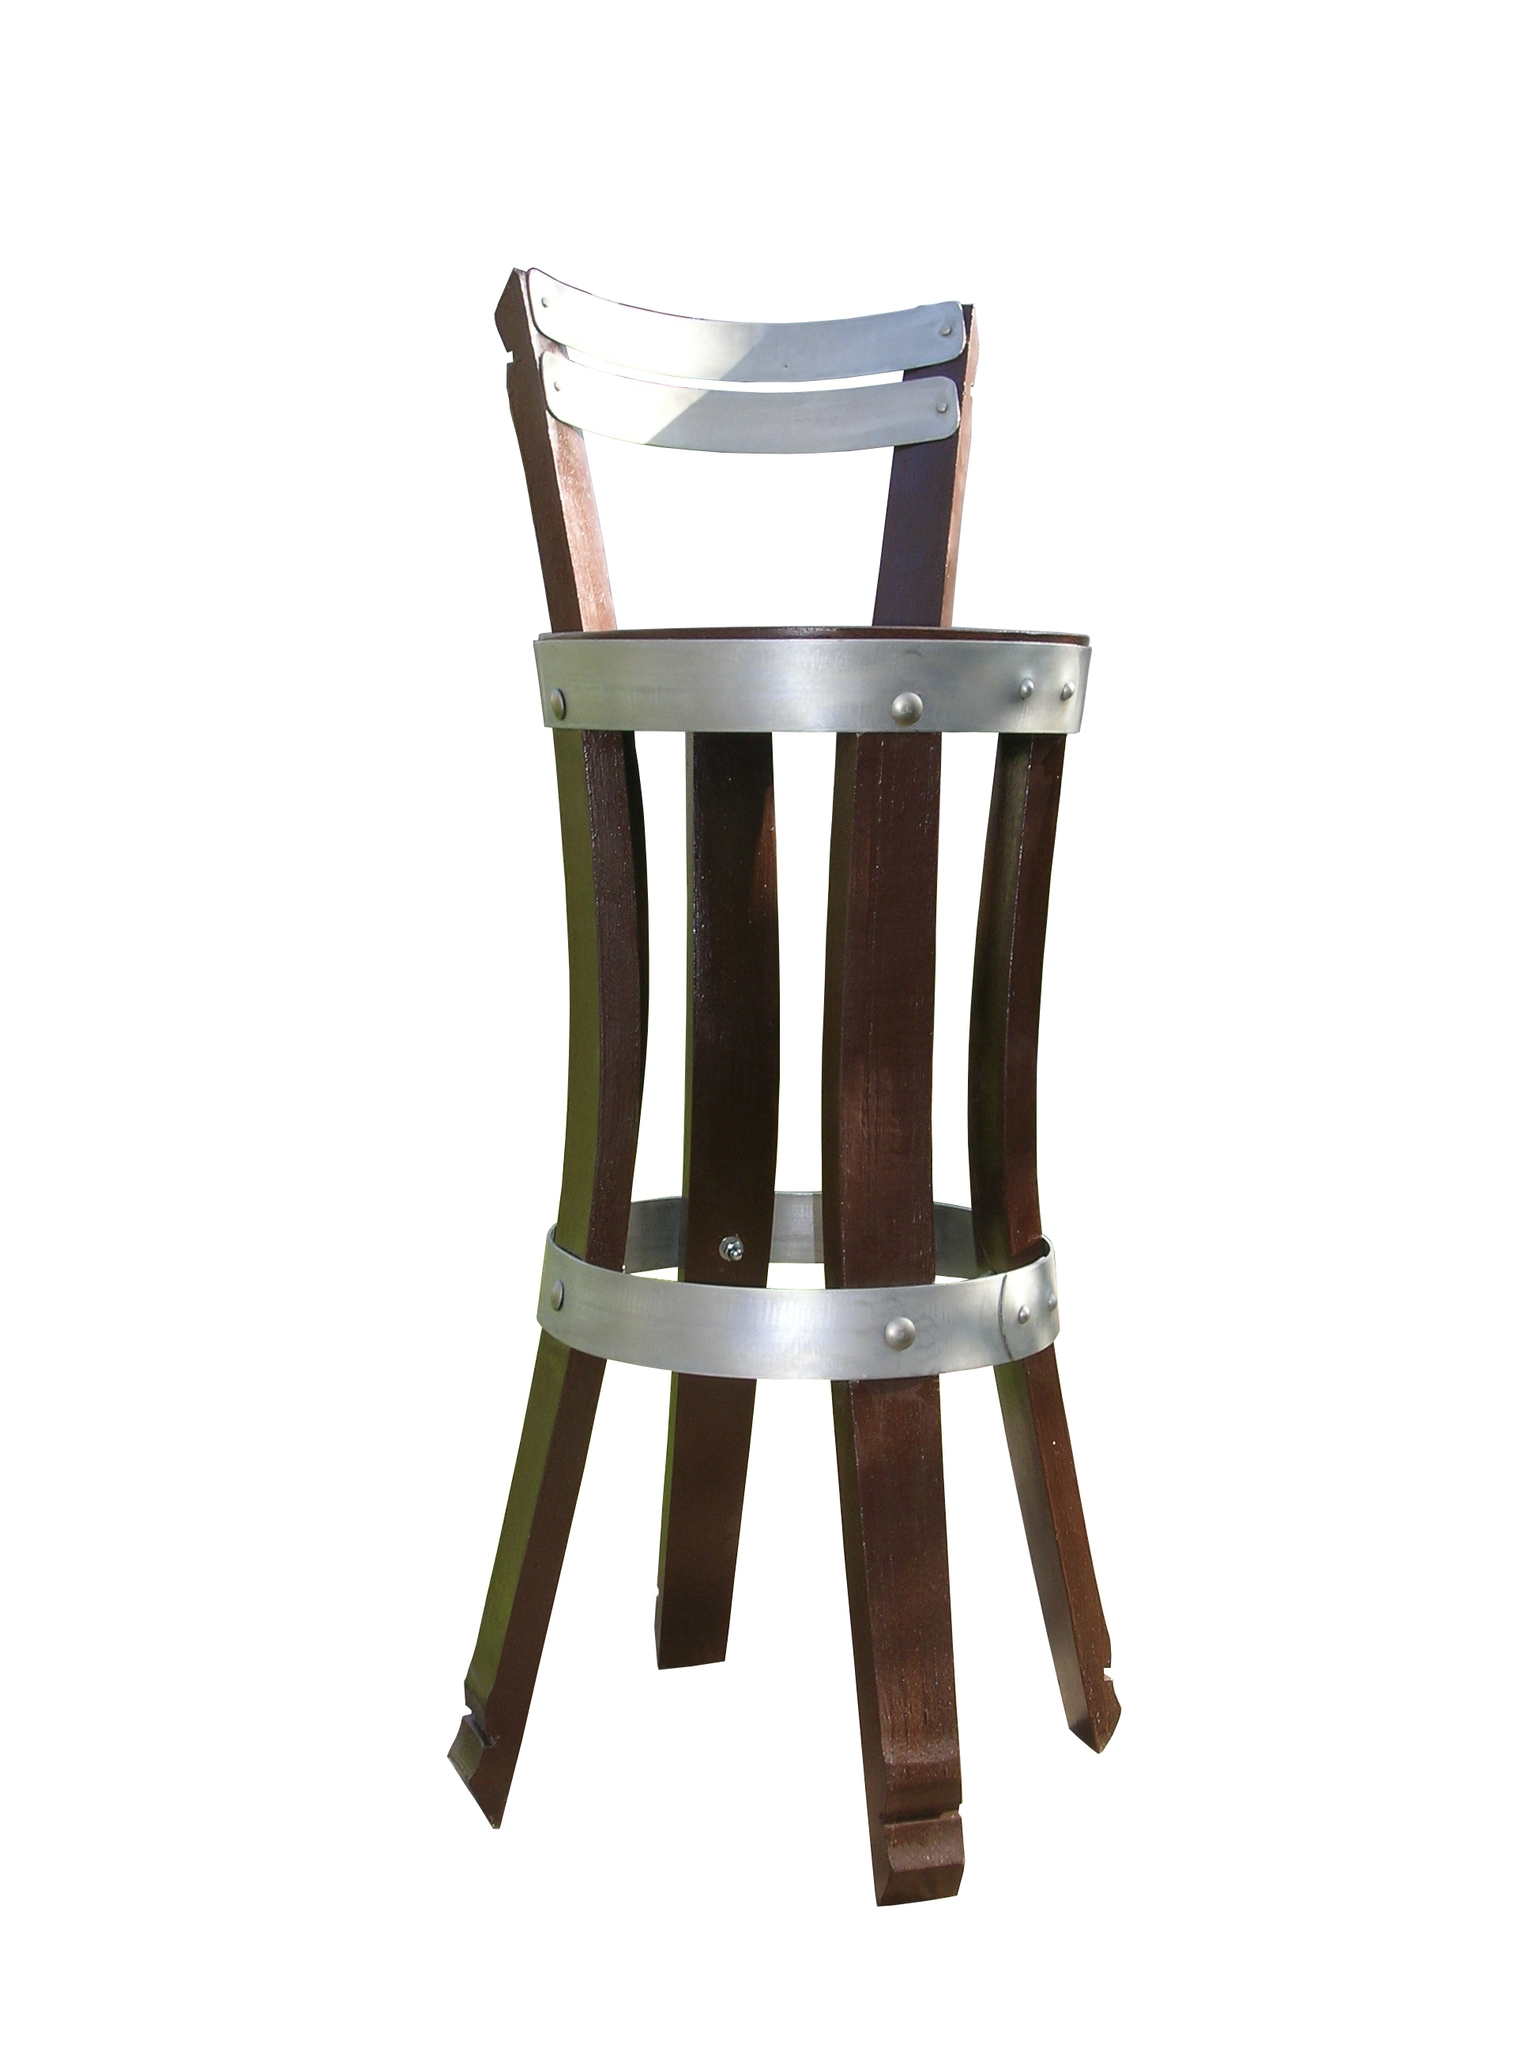 Tabouret De Bar Thonet Tabouret De Cuisine En Bois Interesting Table With Tabouret De